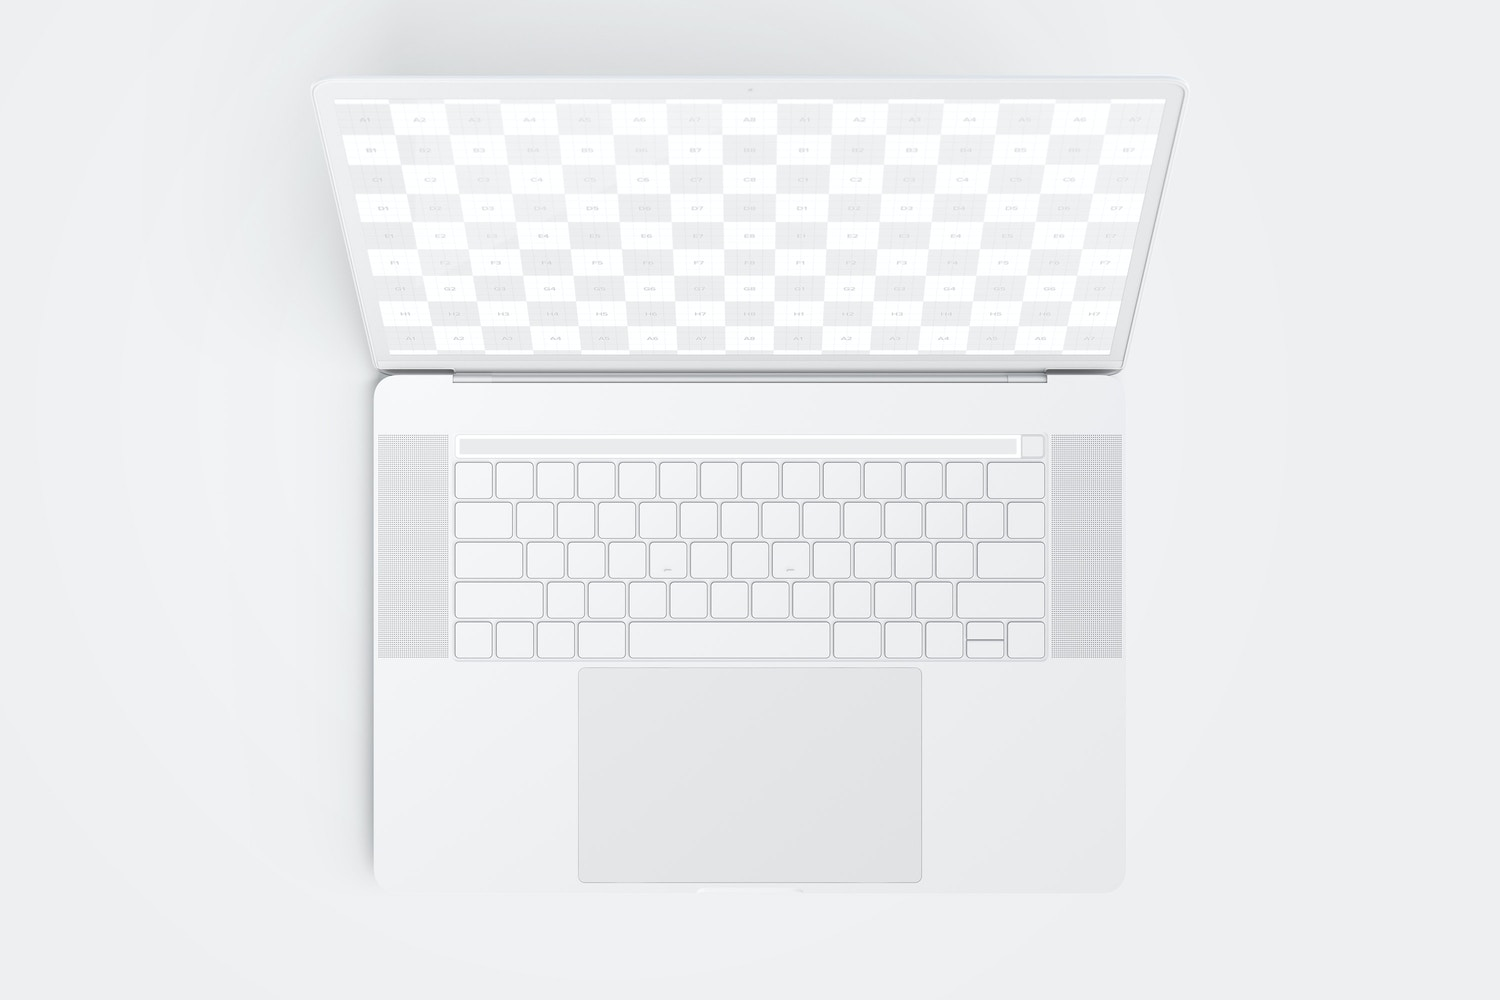 """Clay MacBook Pro 15"""" with Touch Bar, Top View Mockup (2) by Original Mockups on Original Mockups"""